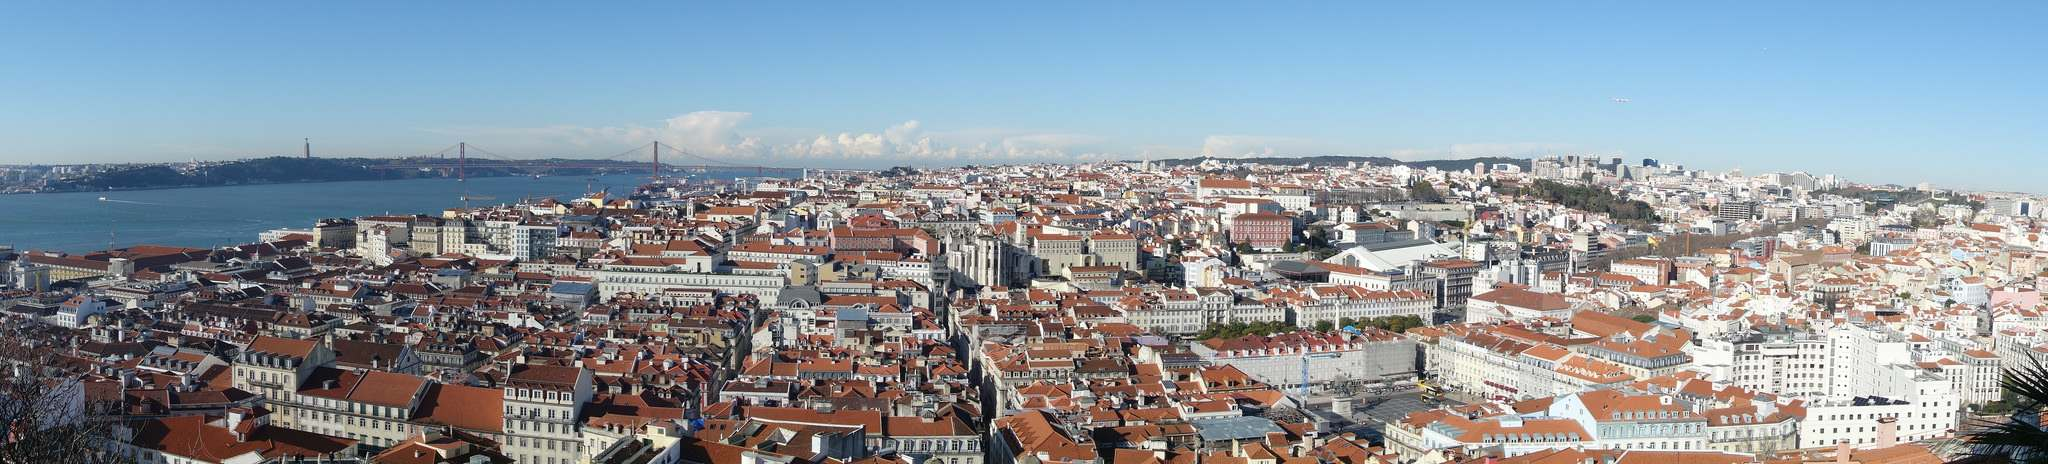 lisbon30 Top Tourist Attractions in Lisbon, Portugal